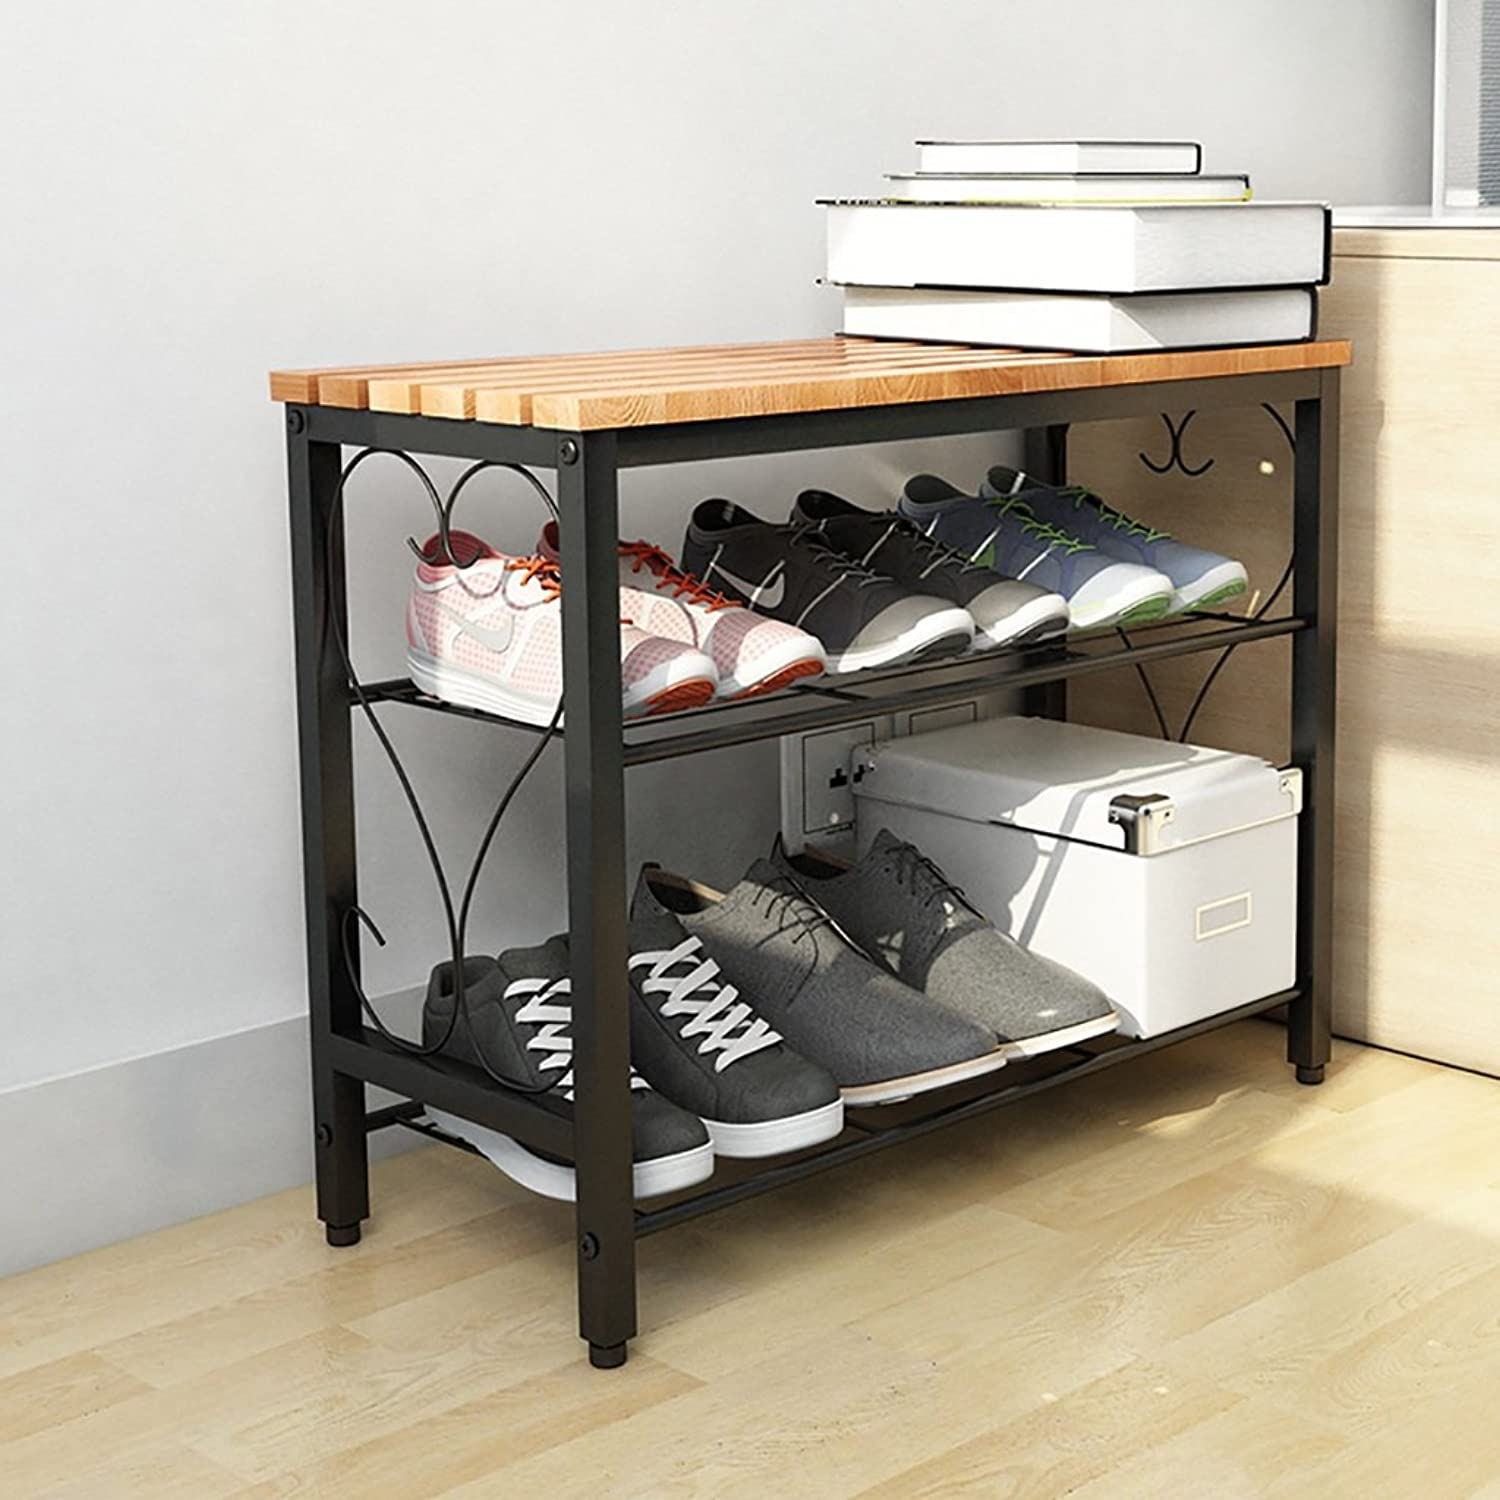 shoes Bench Organizing Rack Simple shoes Racks Household Solid Wood Multi-Storey Economy Shelf Simple Assembly Iron shoes Multi-Function Change shoes Stool (Size   80cm)